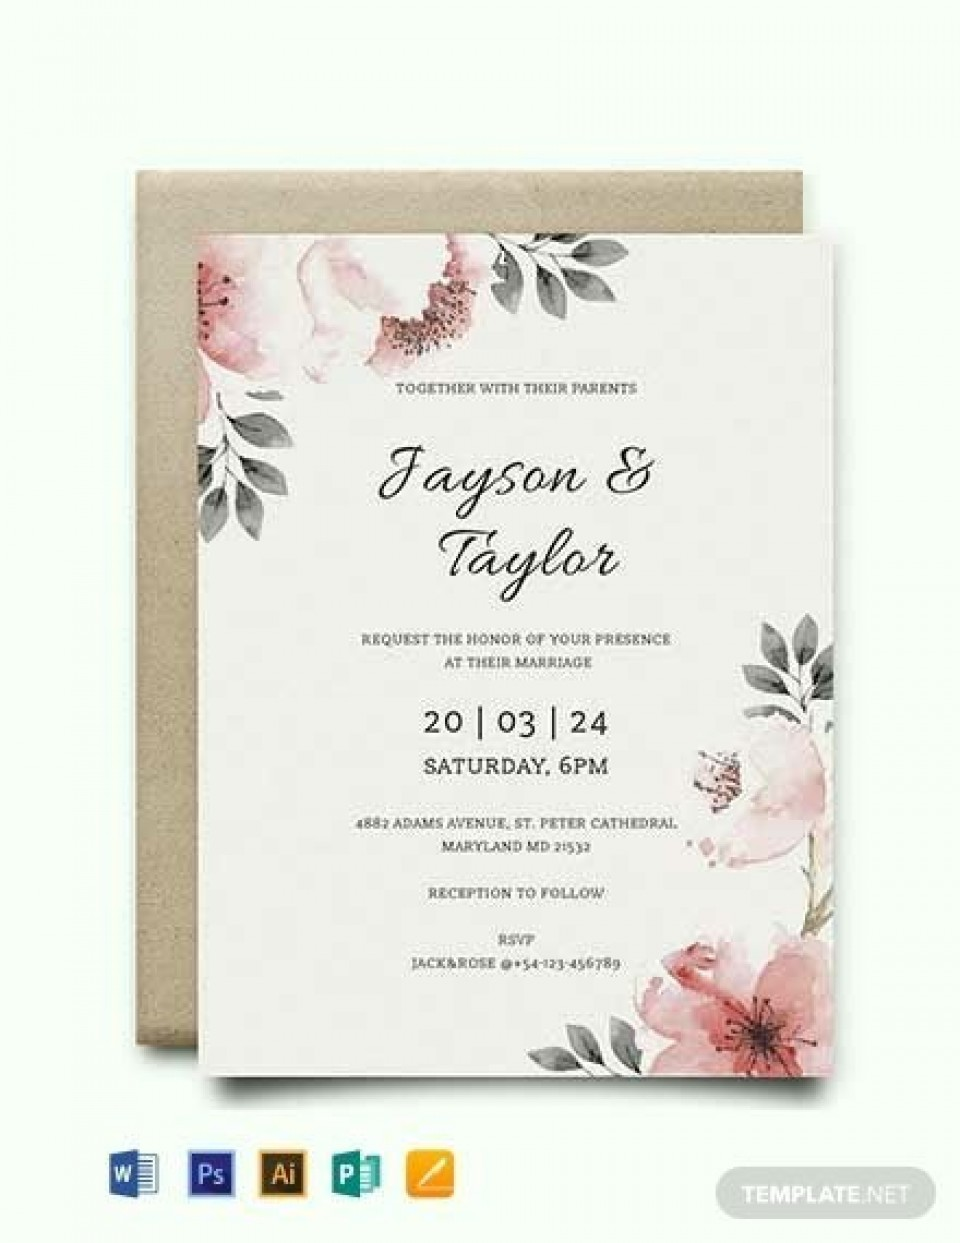 000 Striking Free Download Marriage Invitation Template Example  Card Design Psd After Effect960